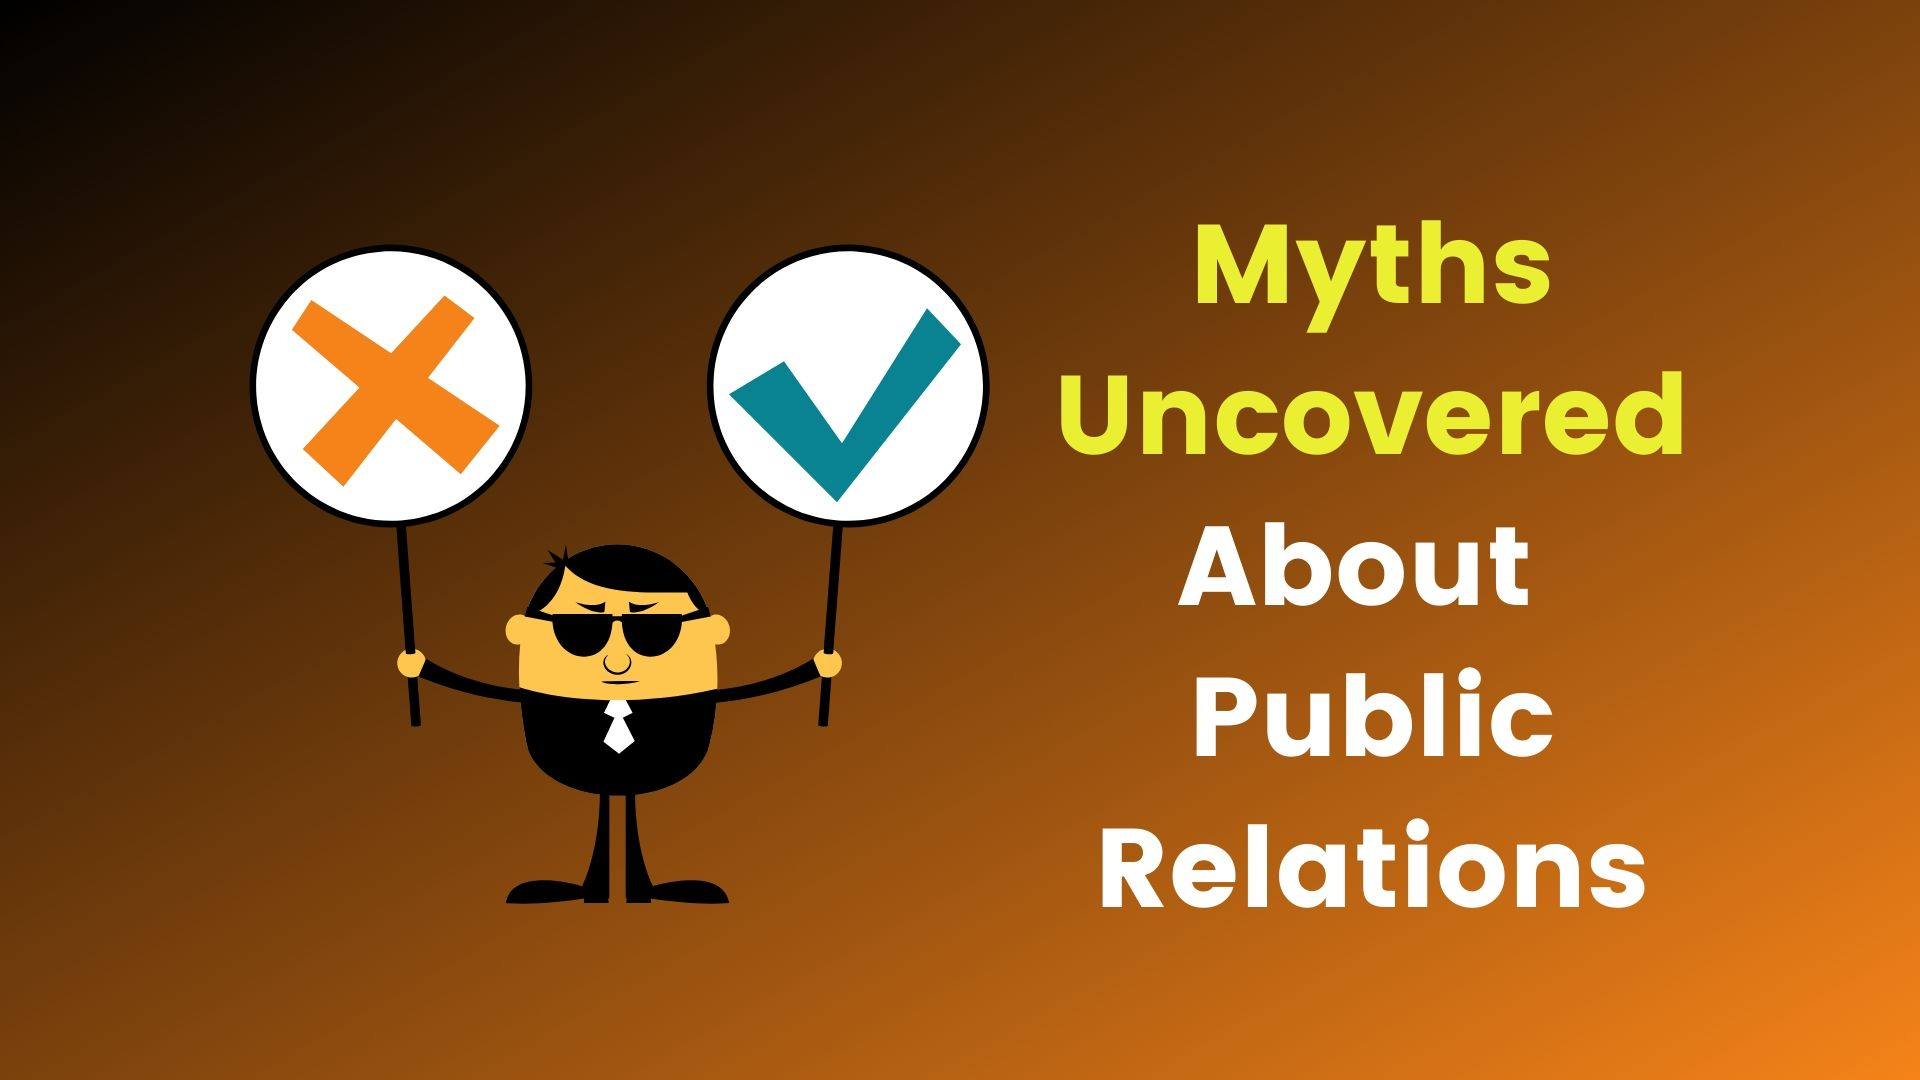 myths about public Relations